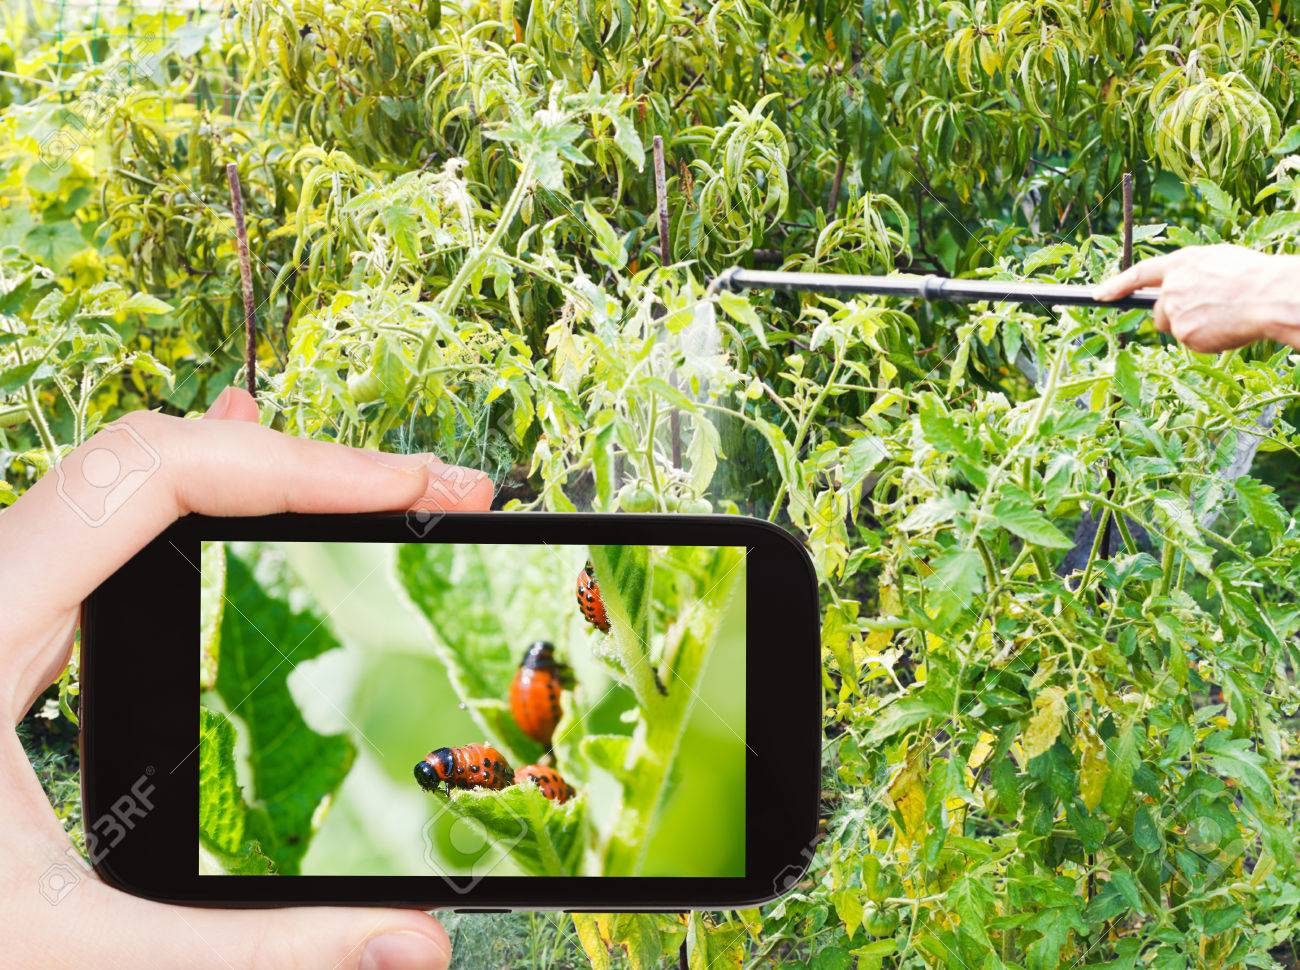 Garden Concept   Man Taking Photo Of Spraying Of Insecticide On Colorado  Potato Beetle On Mobile